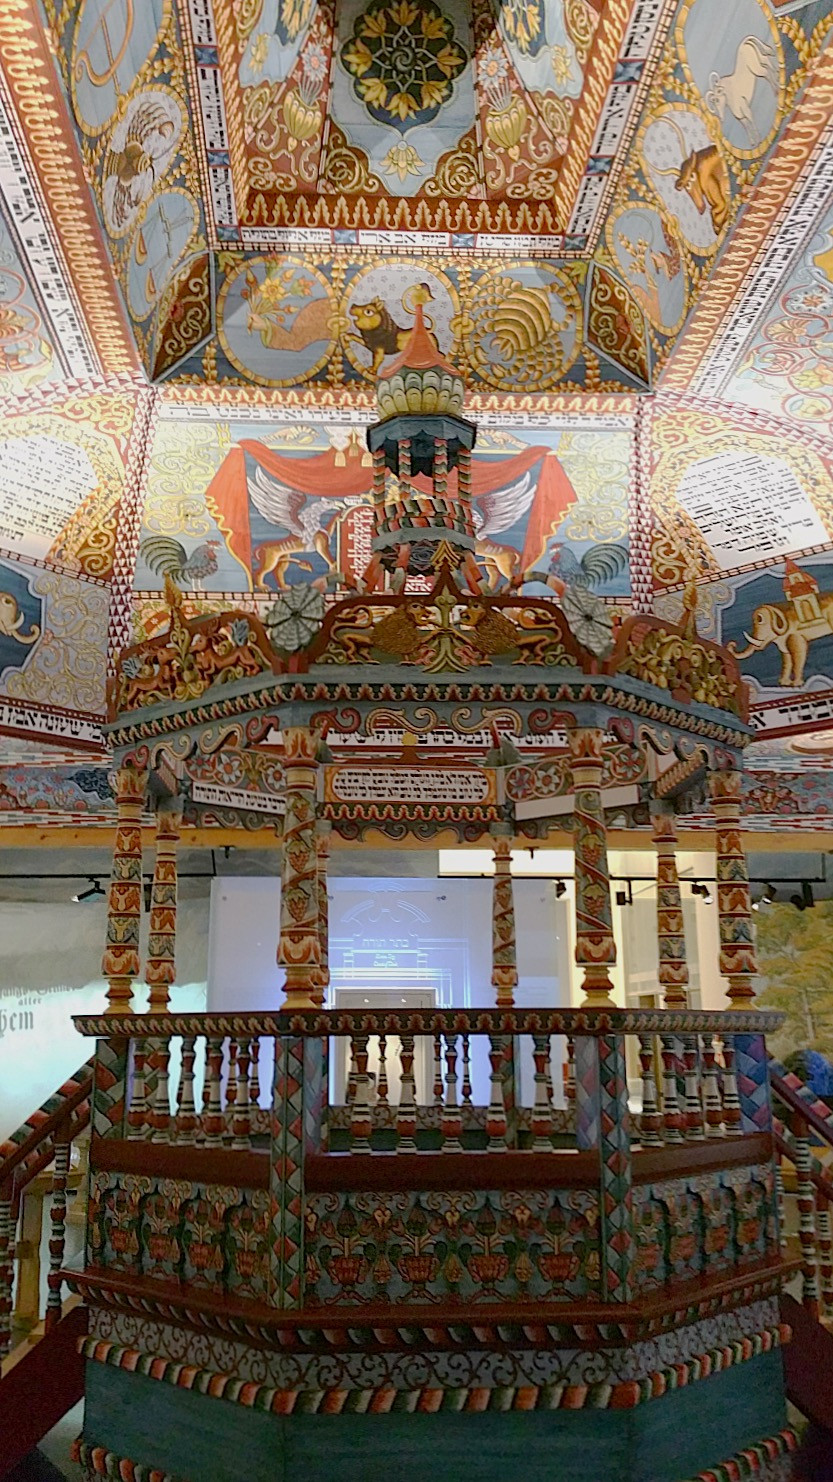 A reconstructed synagogue ceiling